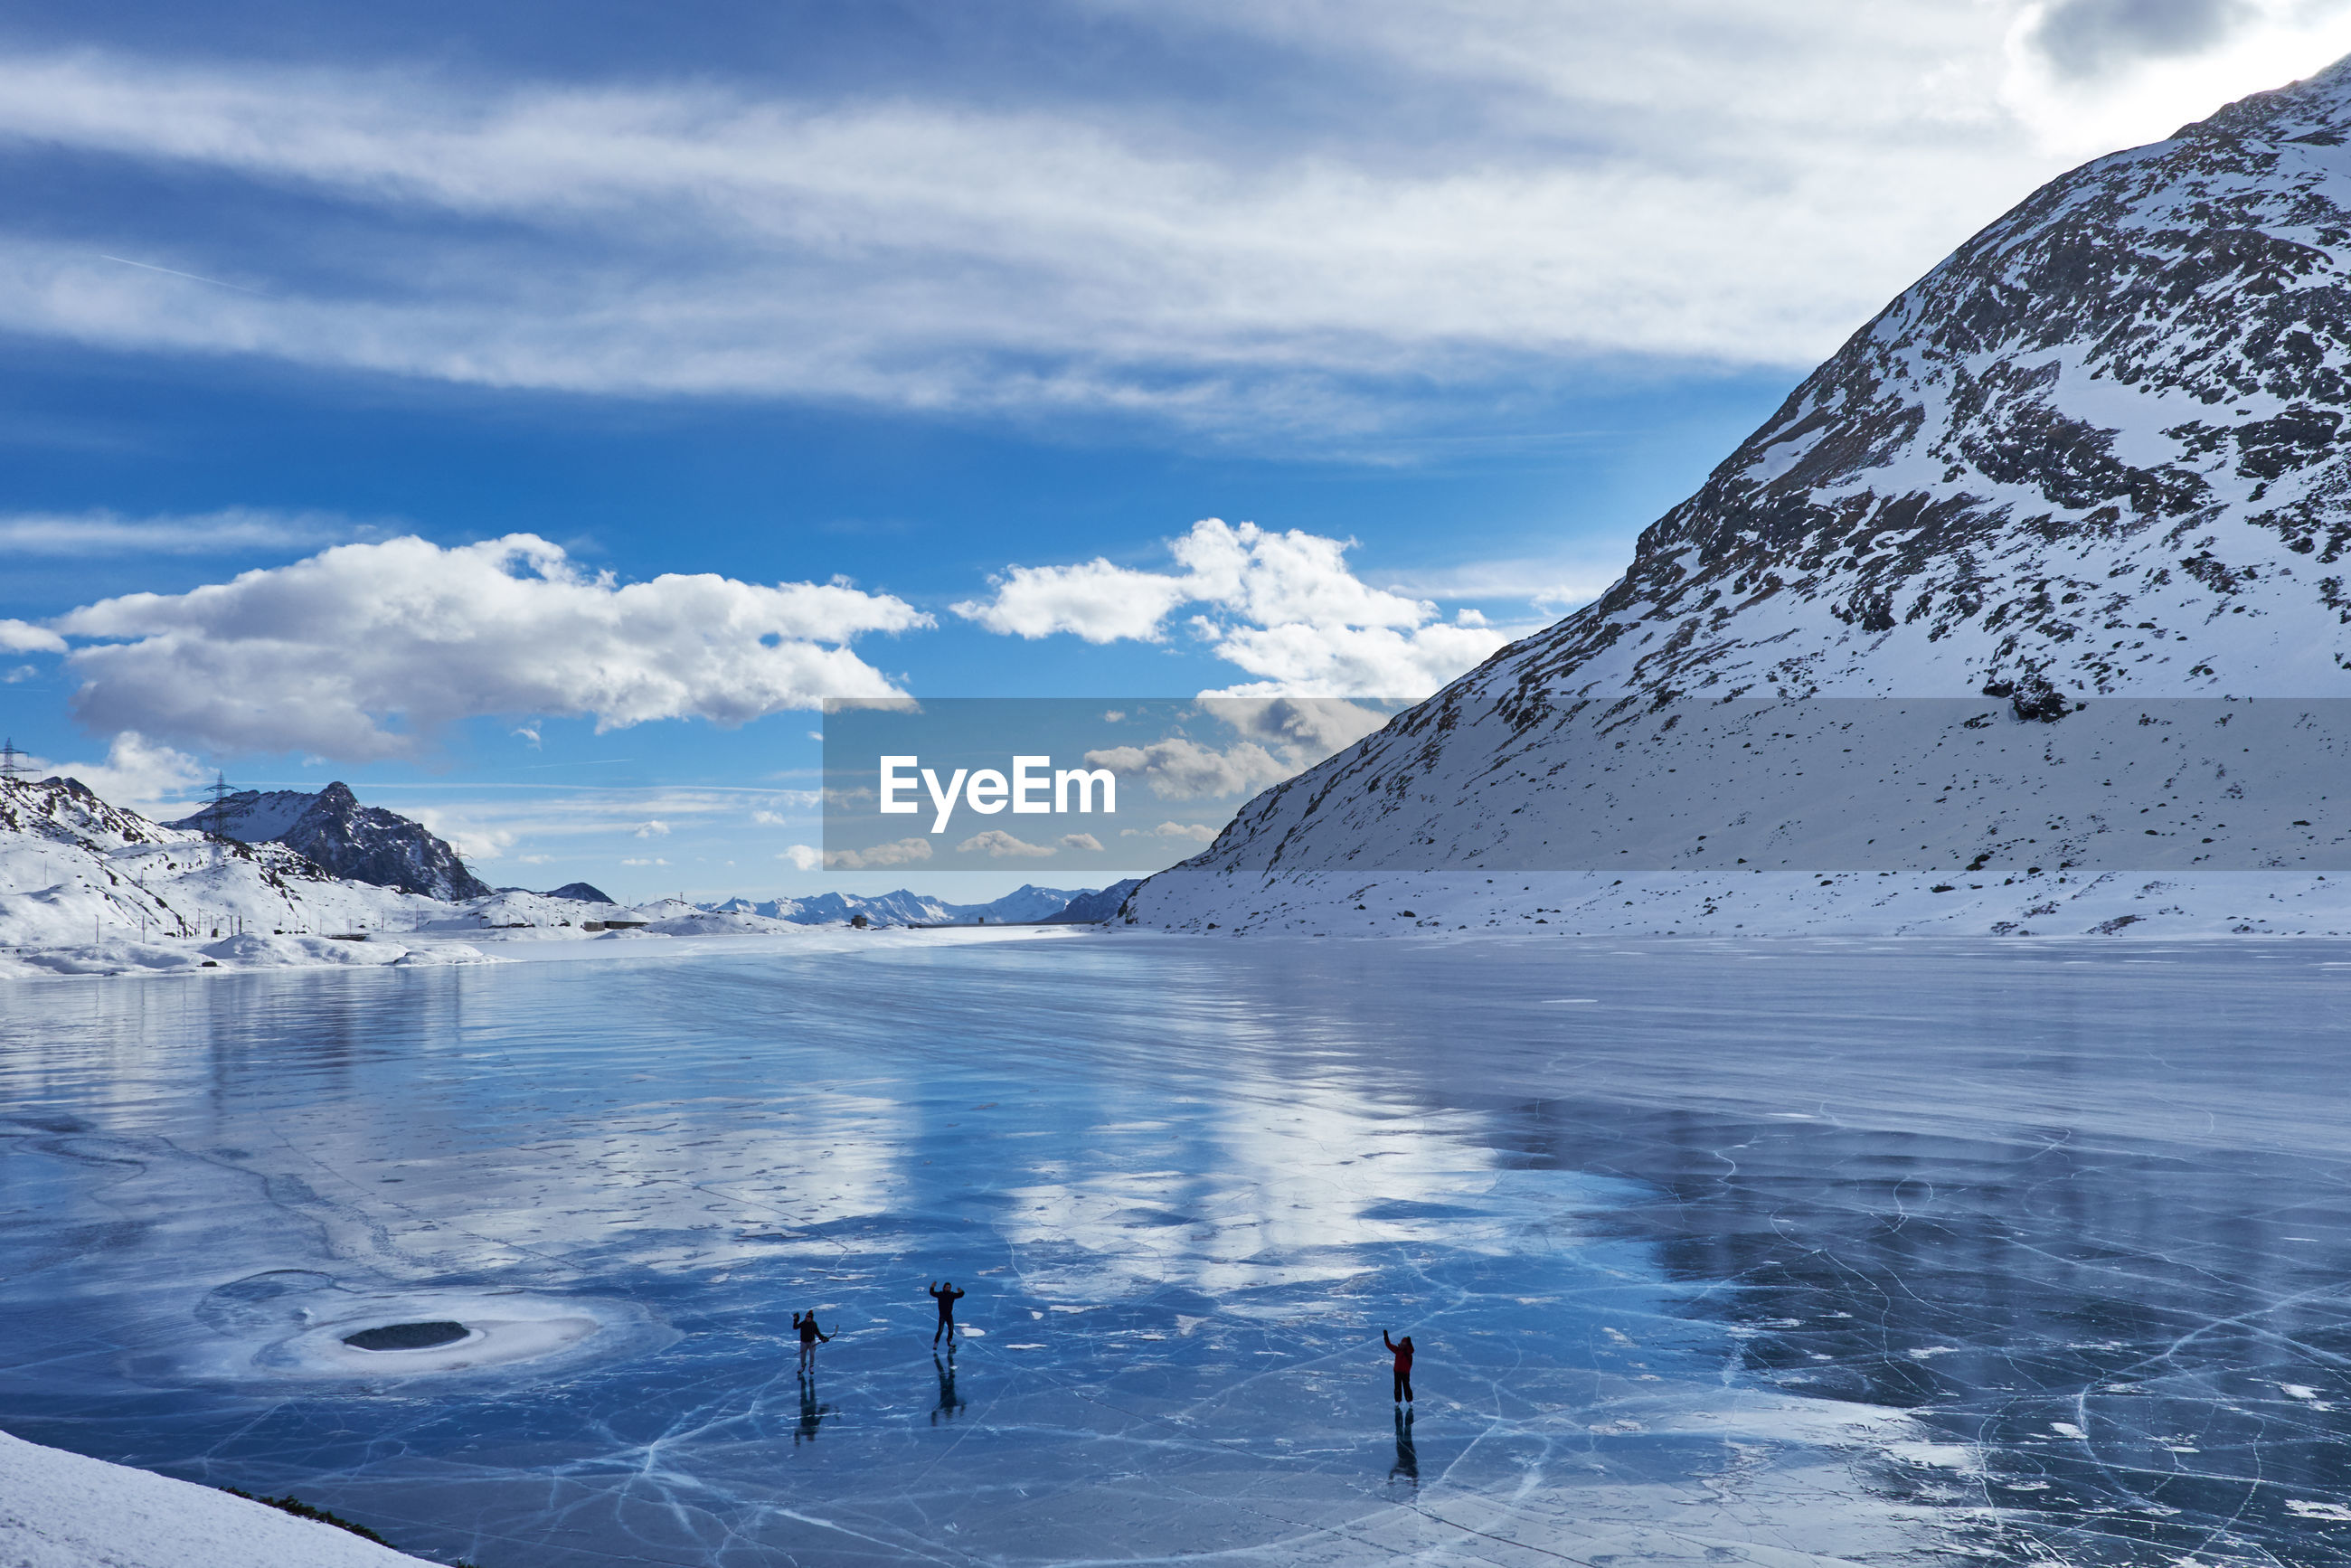 cold temperature, winter, cloud - sky, snow, nature, scenics, beauty in nature, frozen, sky, water, ice, sea, outdoors, idyllic, day, tranquil scene, landscape, mountain, glacier, people, one person, ice skate